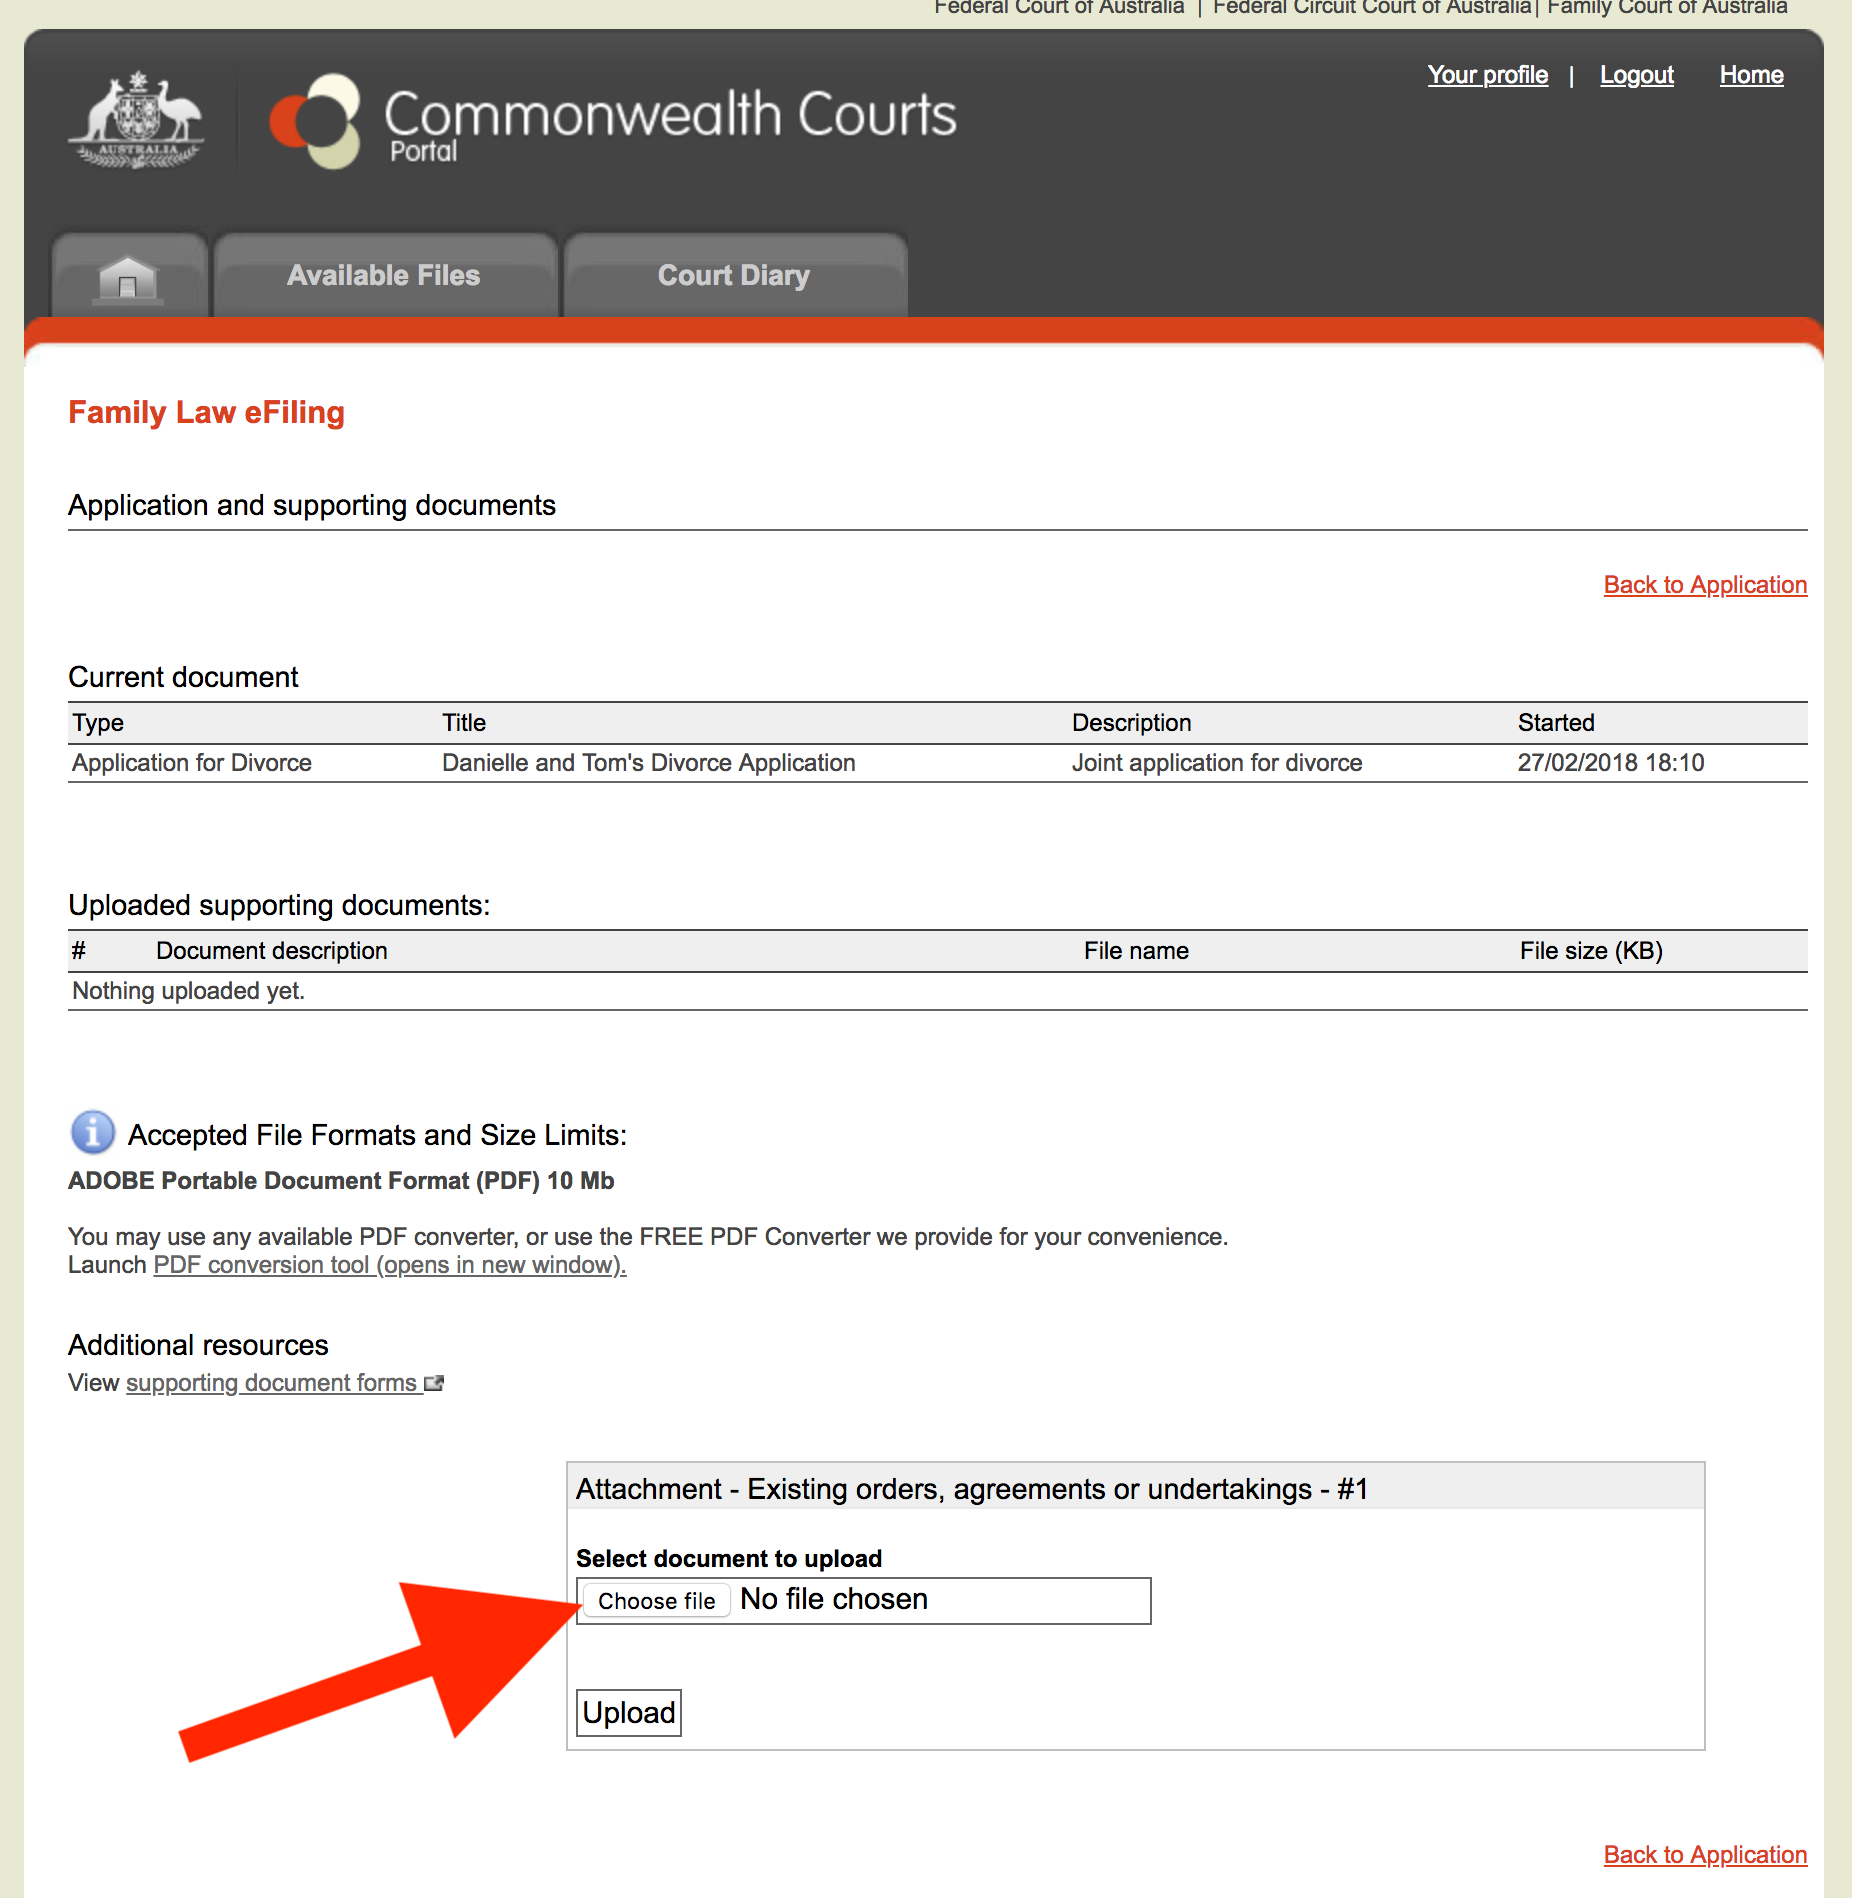 Choose file - commonwealth courts portal